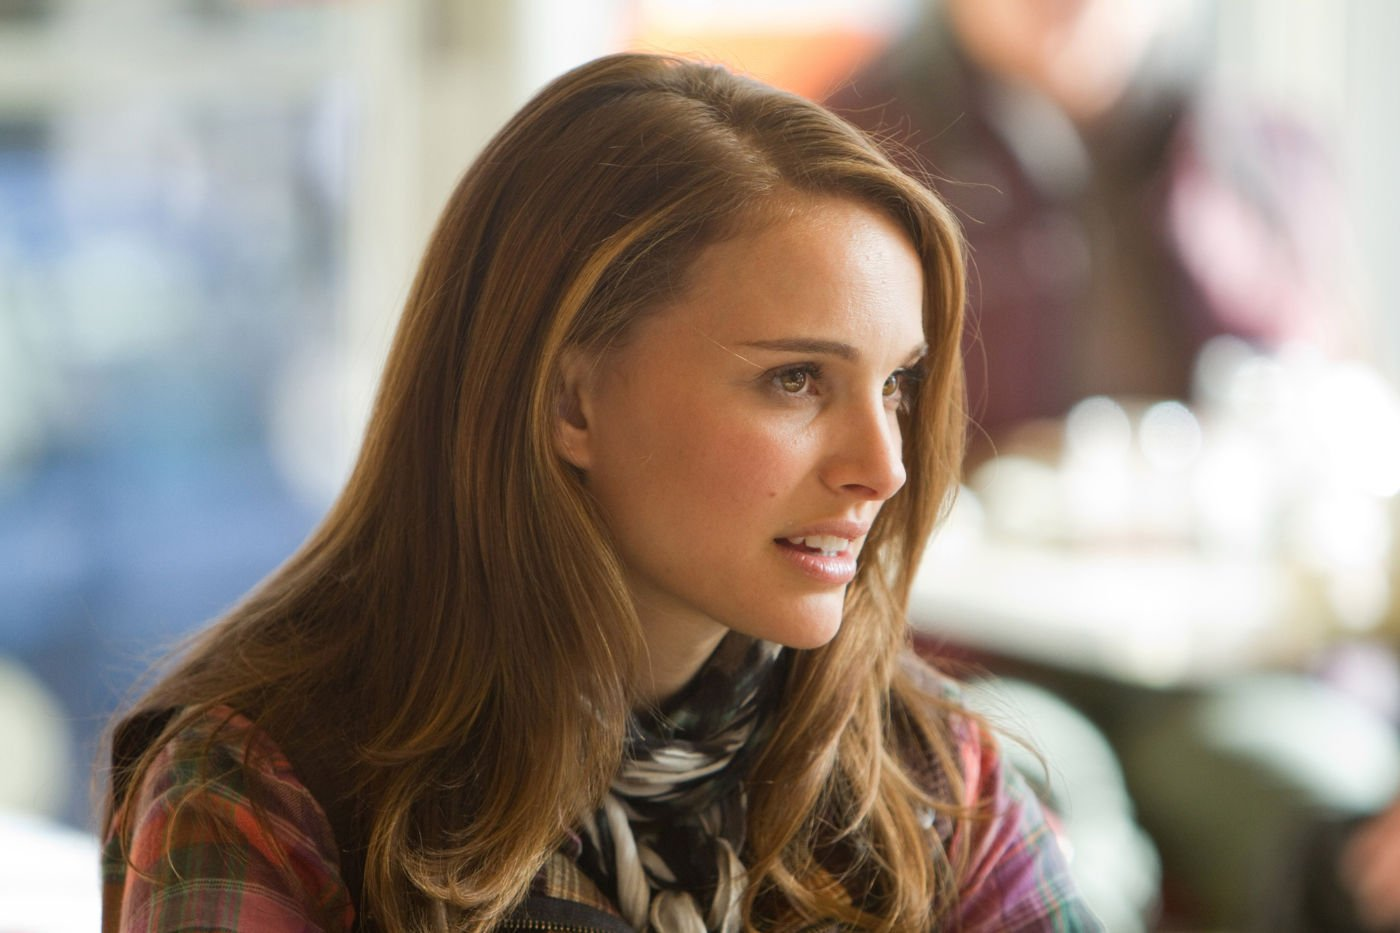 Goodwin Liu >> Natalie Portman Insists on Female Director | The Mary Sue